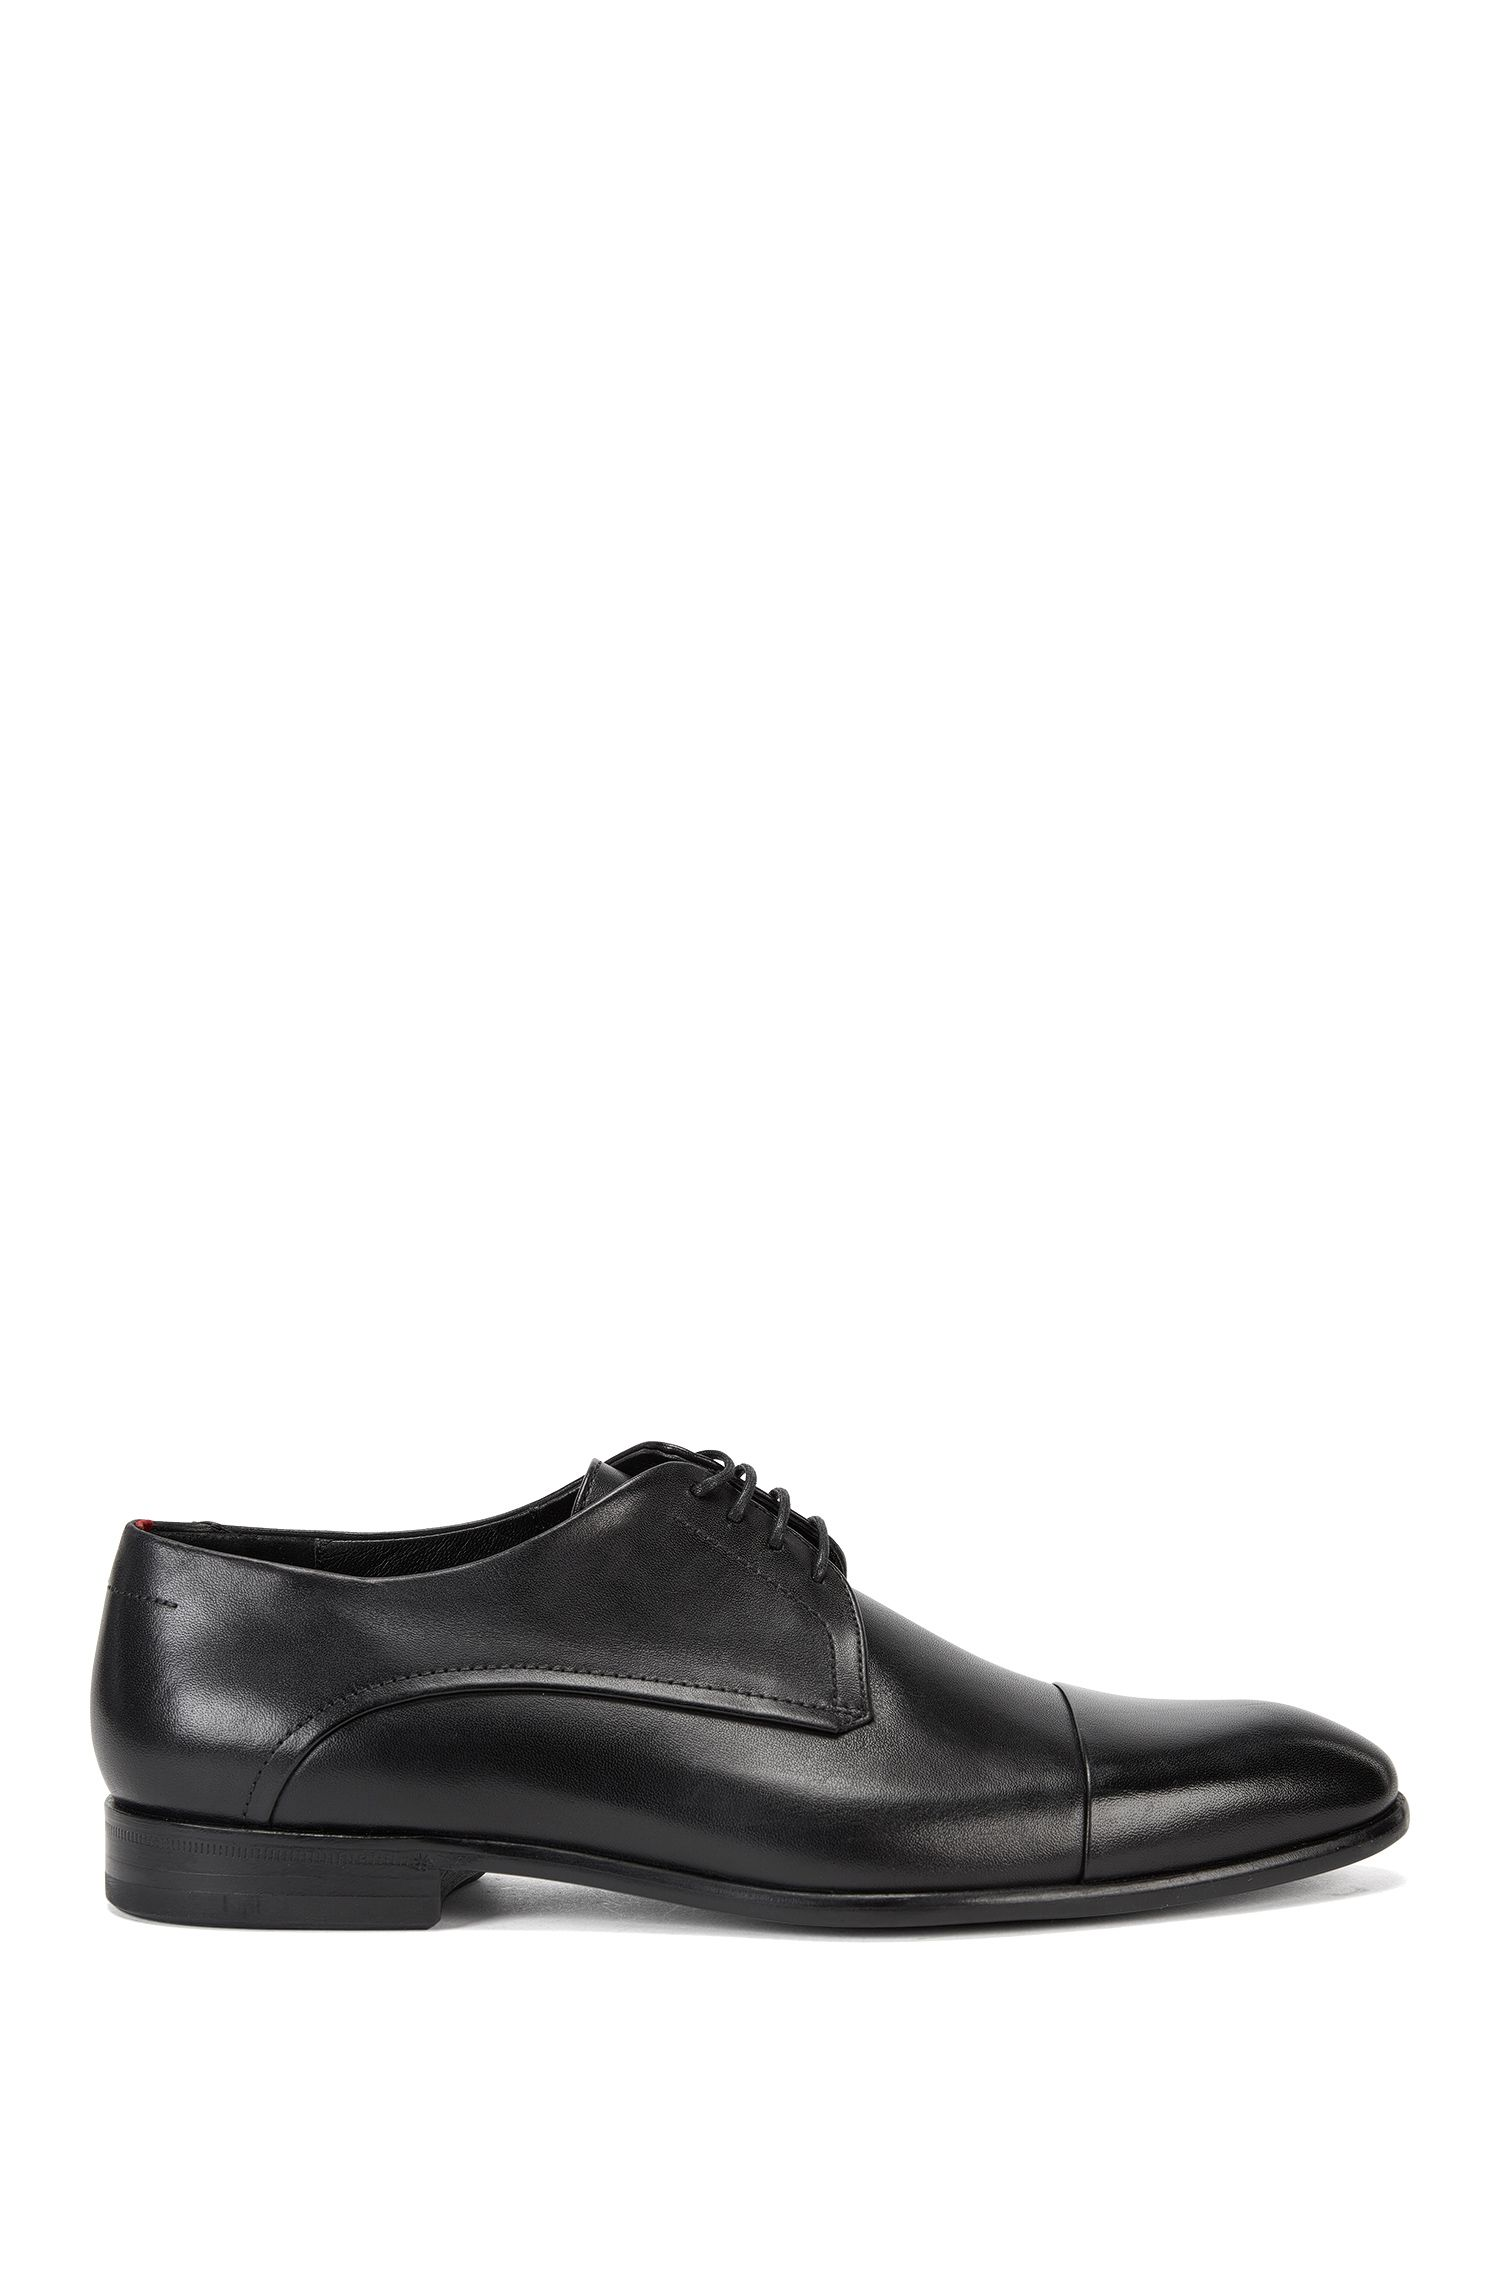 Derby shoes in rich burnished leather